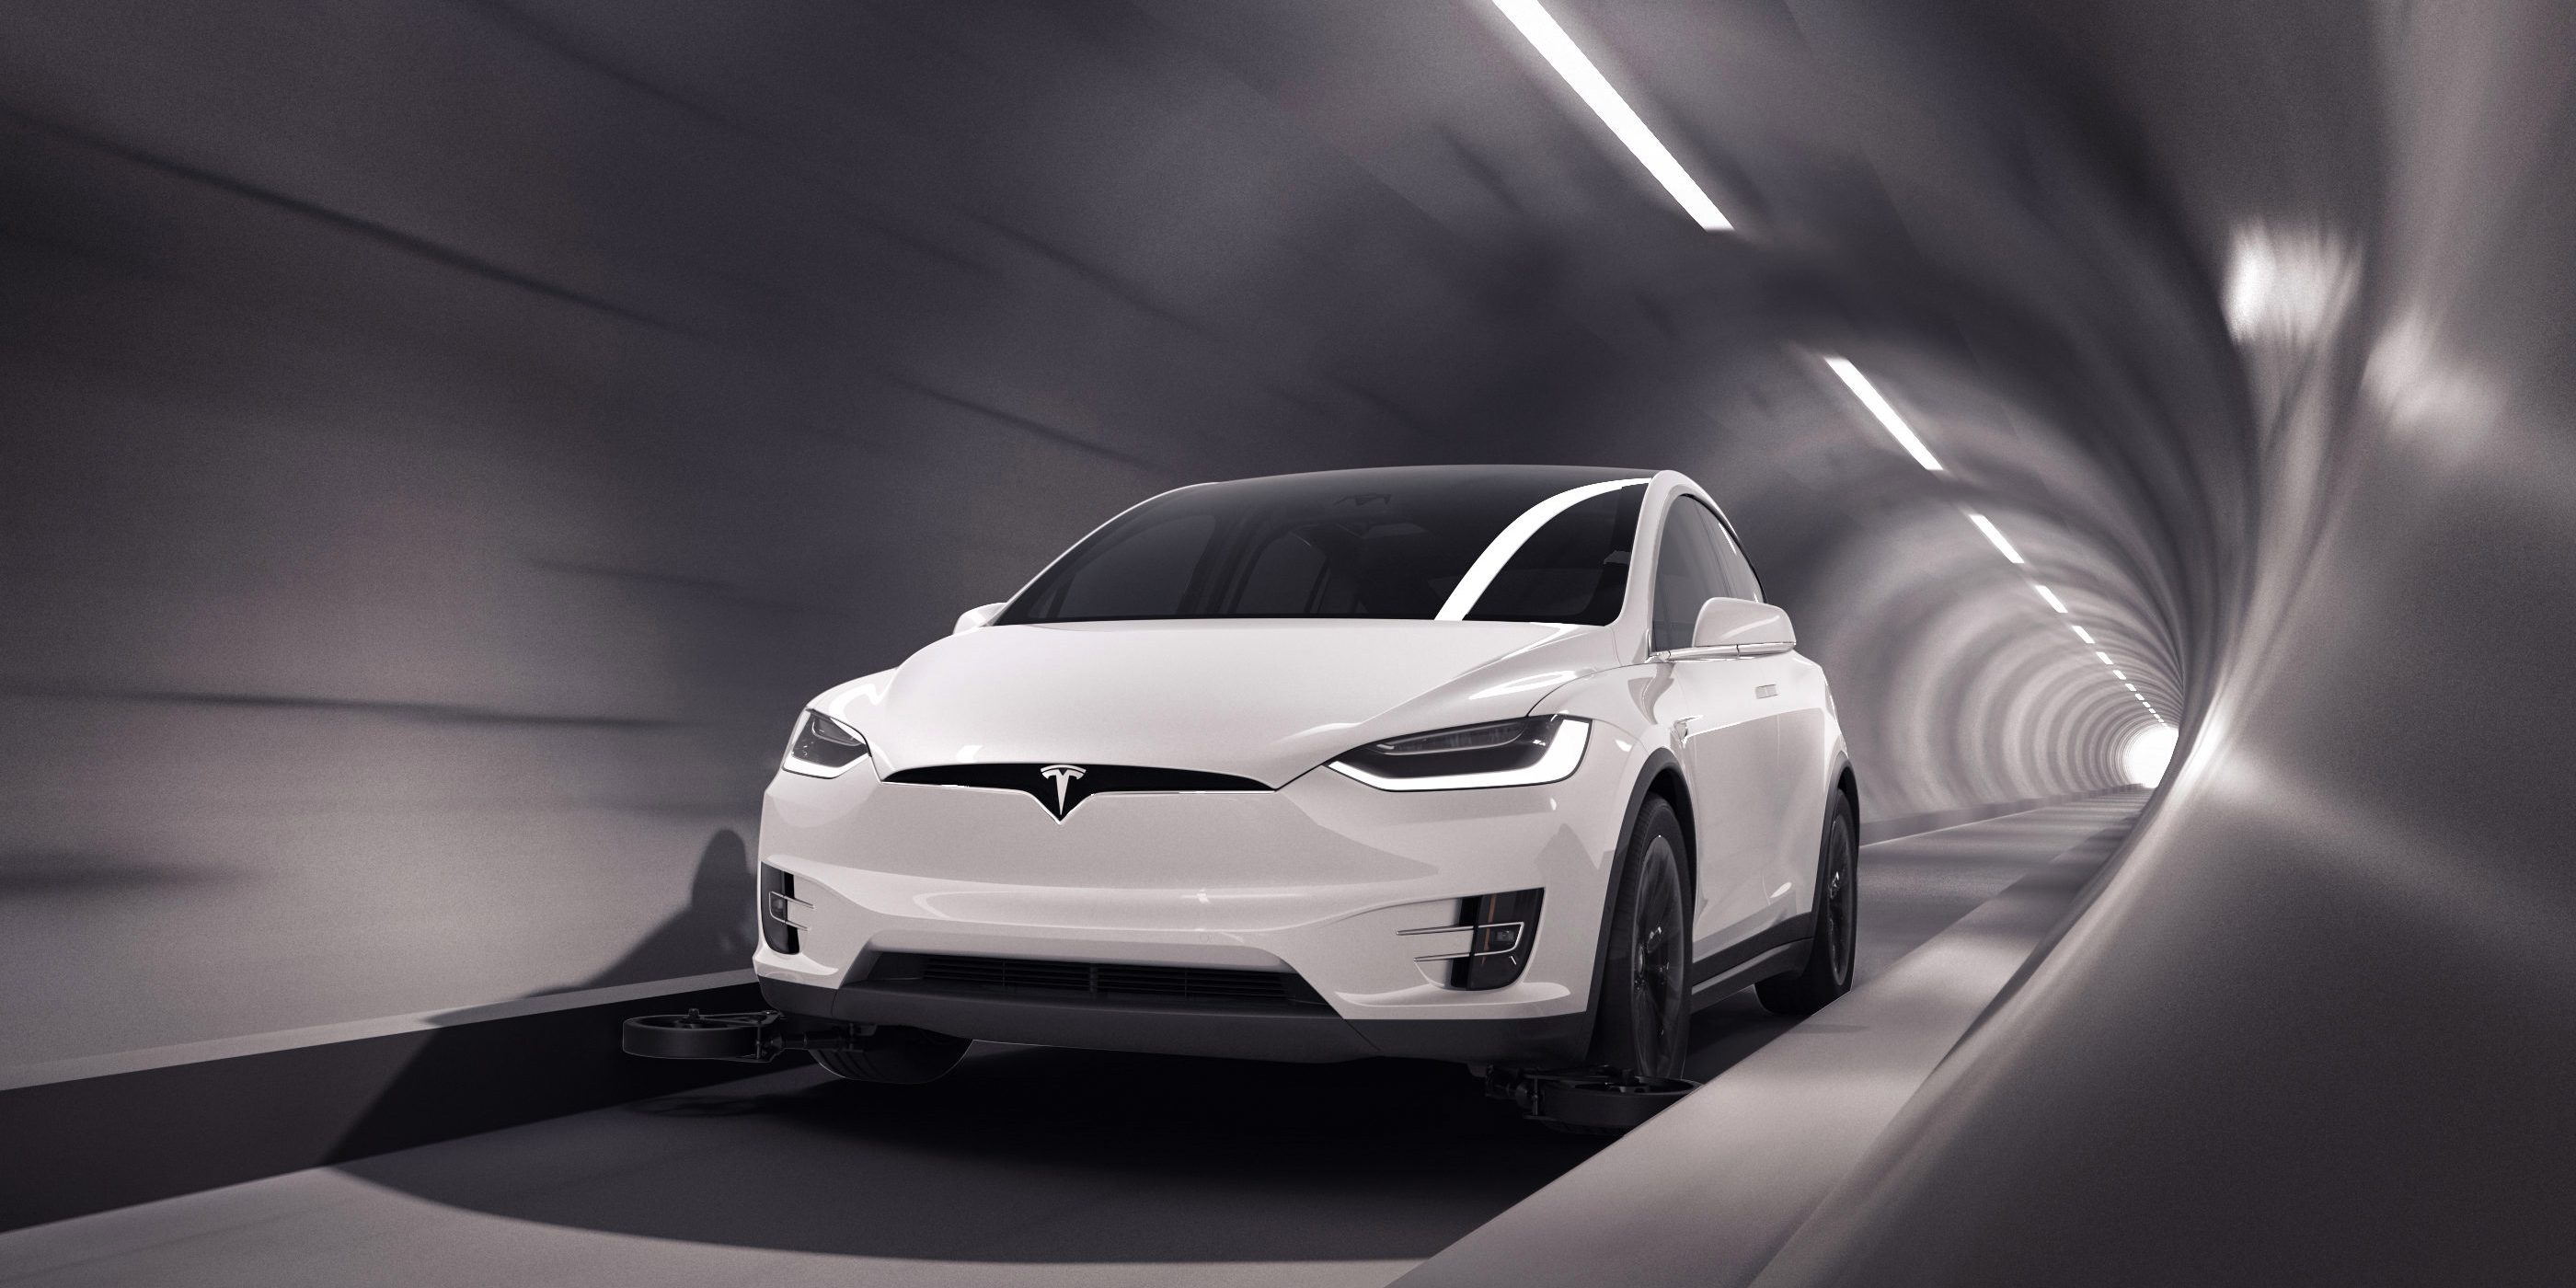 Elon Musk's Boring Company unveils first tunnel with Tesla vehicles on  'tracking wheels' - Electrek